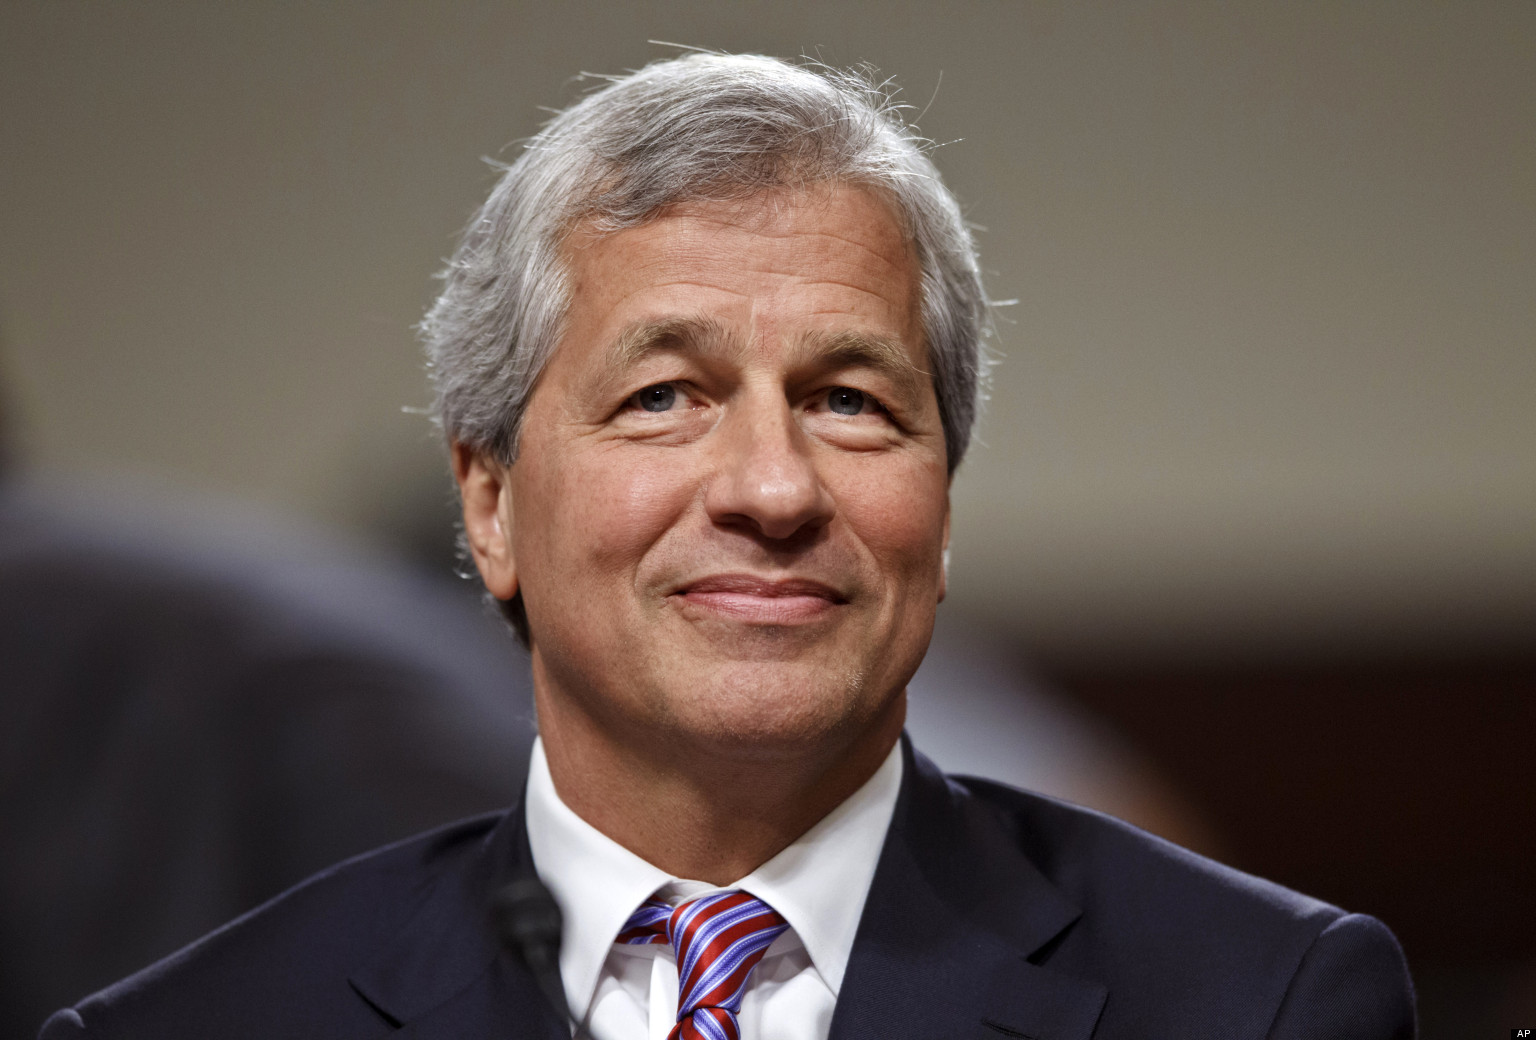 JPMorgan Chase CEO Jamie Dimon diagnosed with throat cancer, will ...